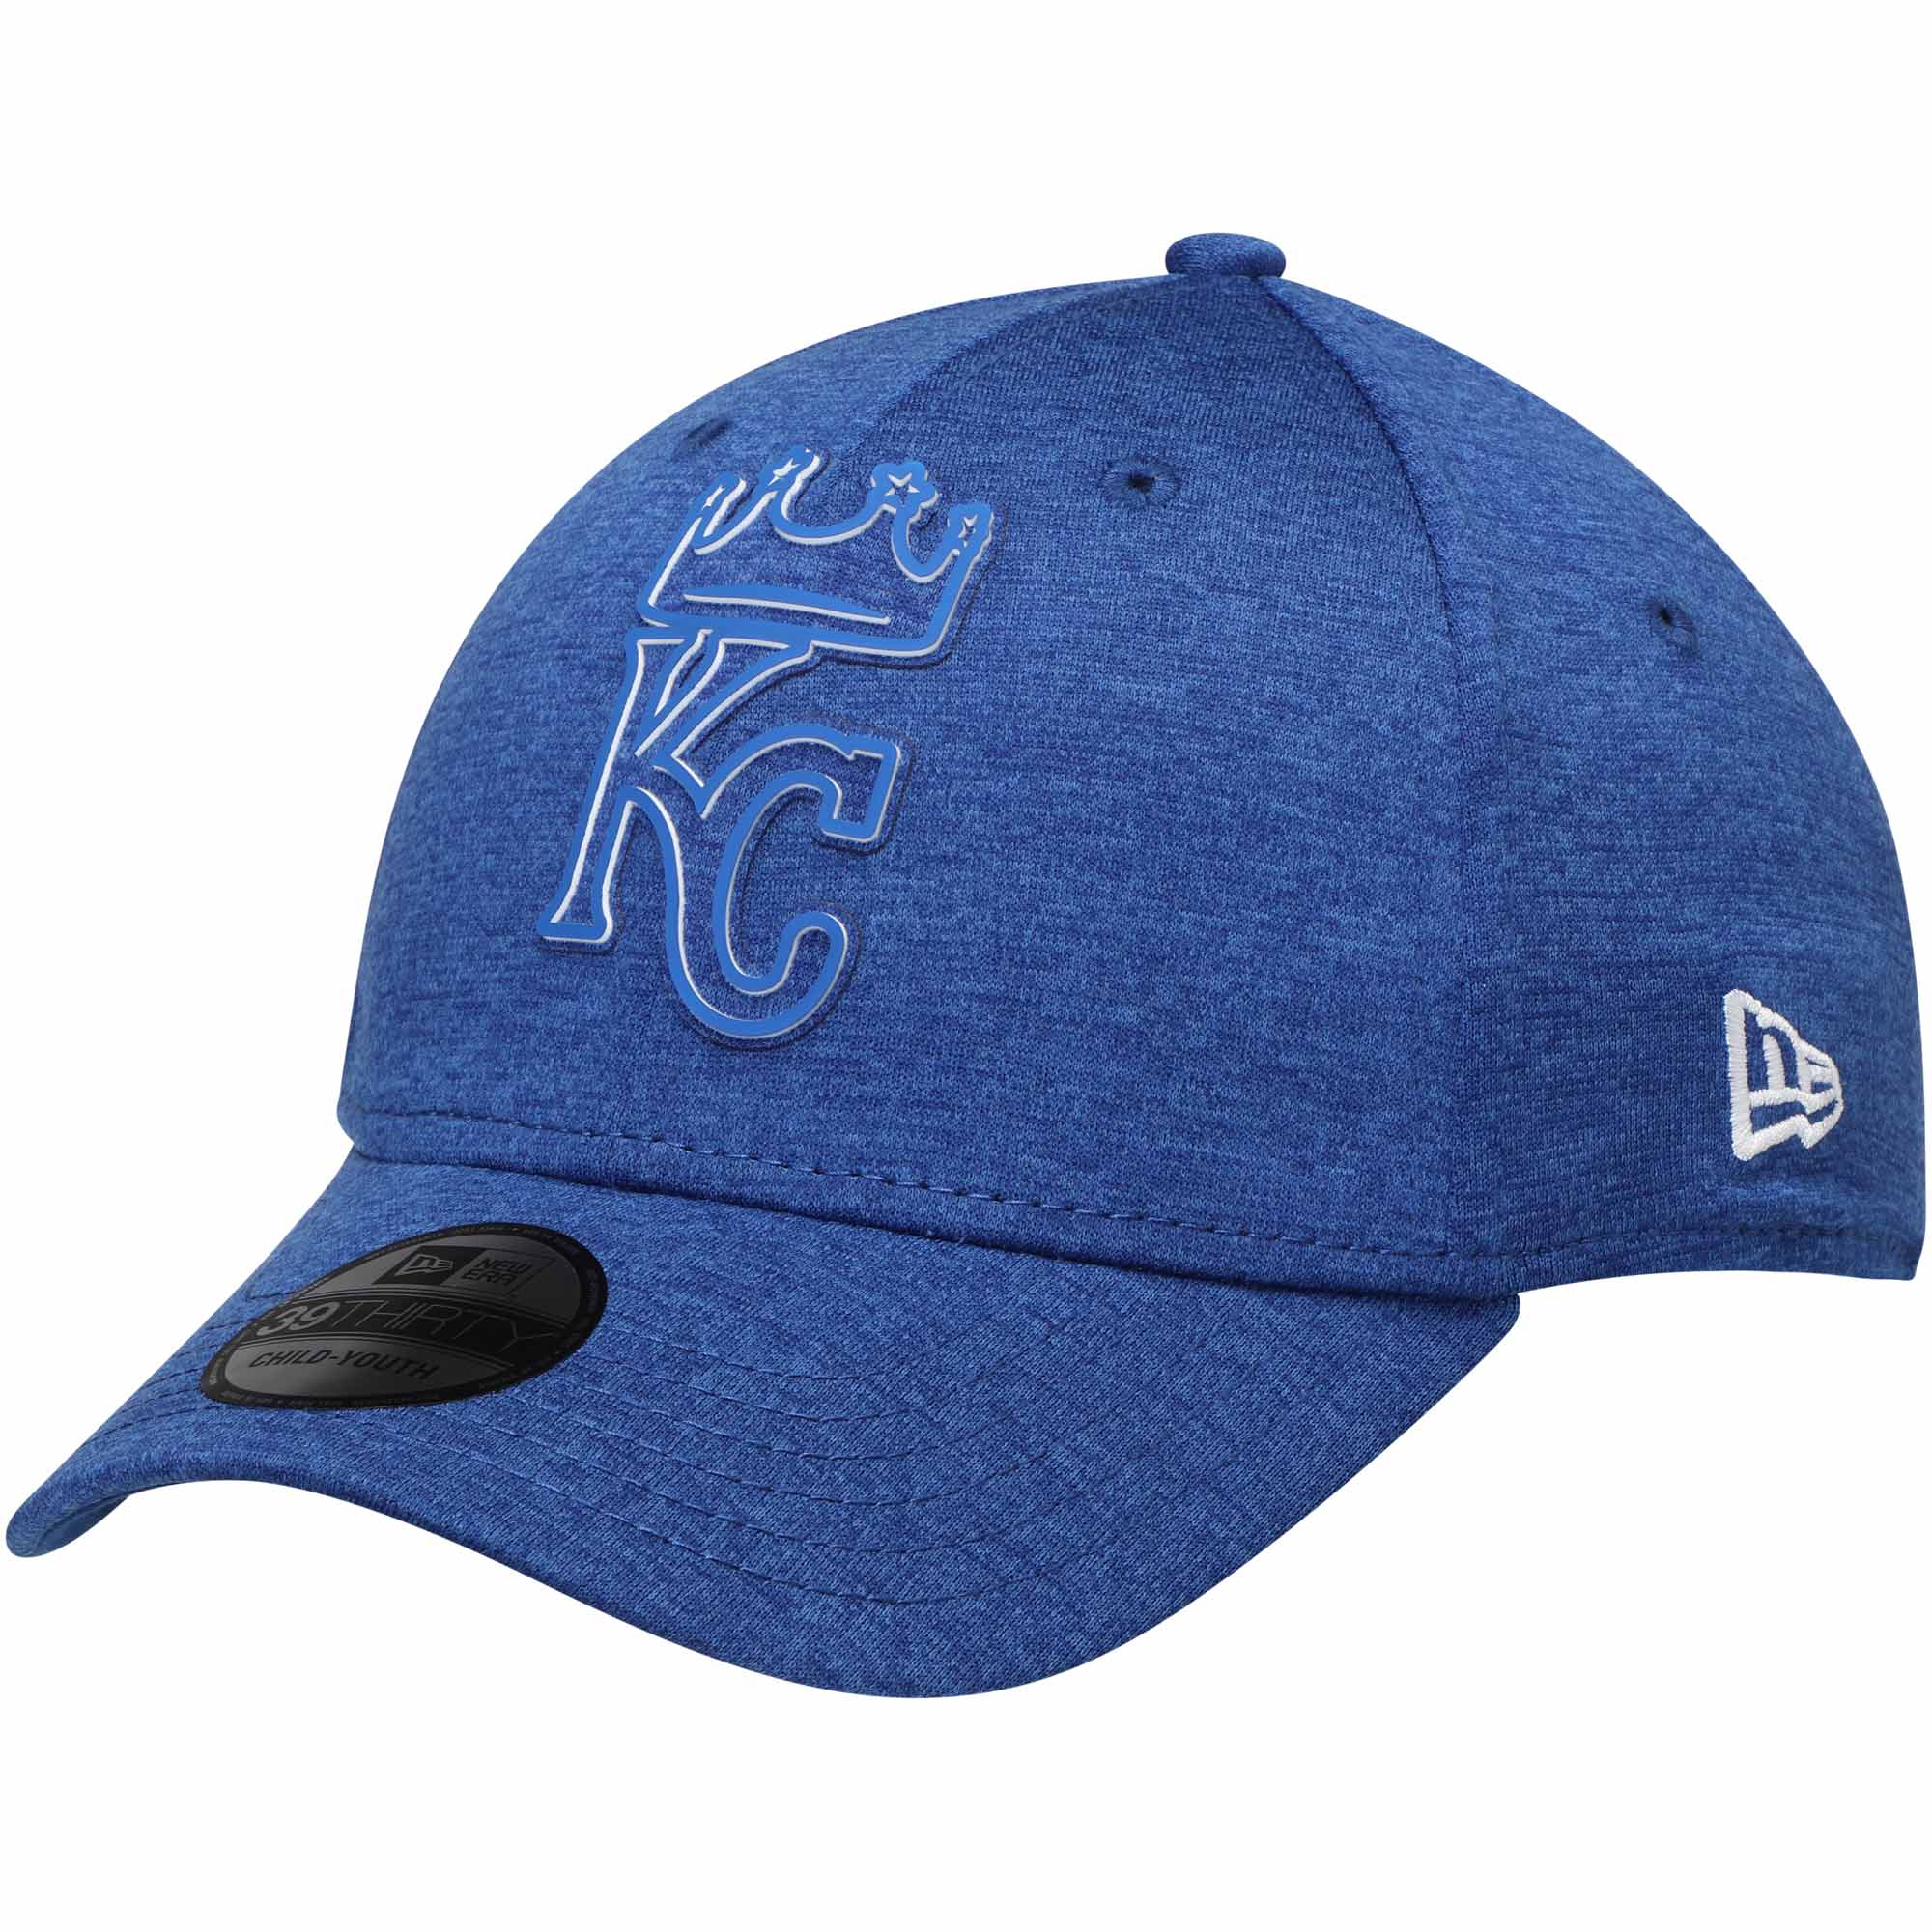 size 40 92a28 af863 Kansas City Royals New Era Youth 2018 Clubhouse Collection Classic 39THIRTY  Flex Hat - Royal - Child Yth - Walmart.com